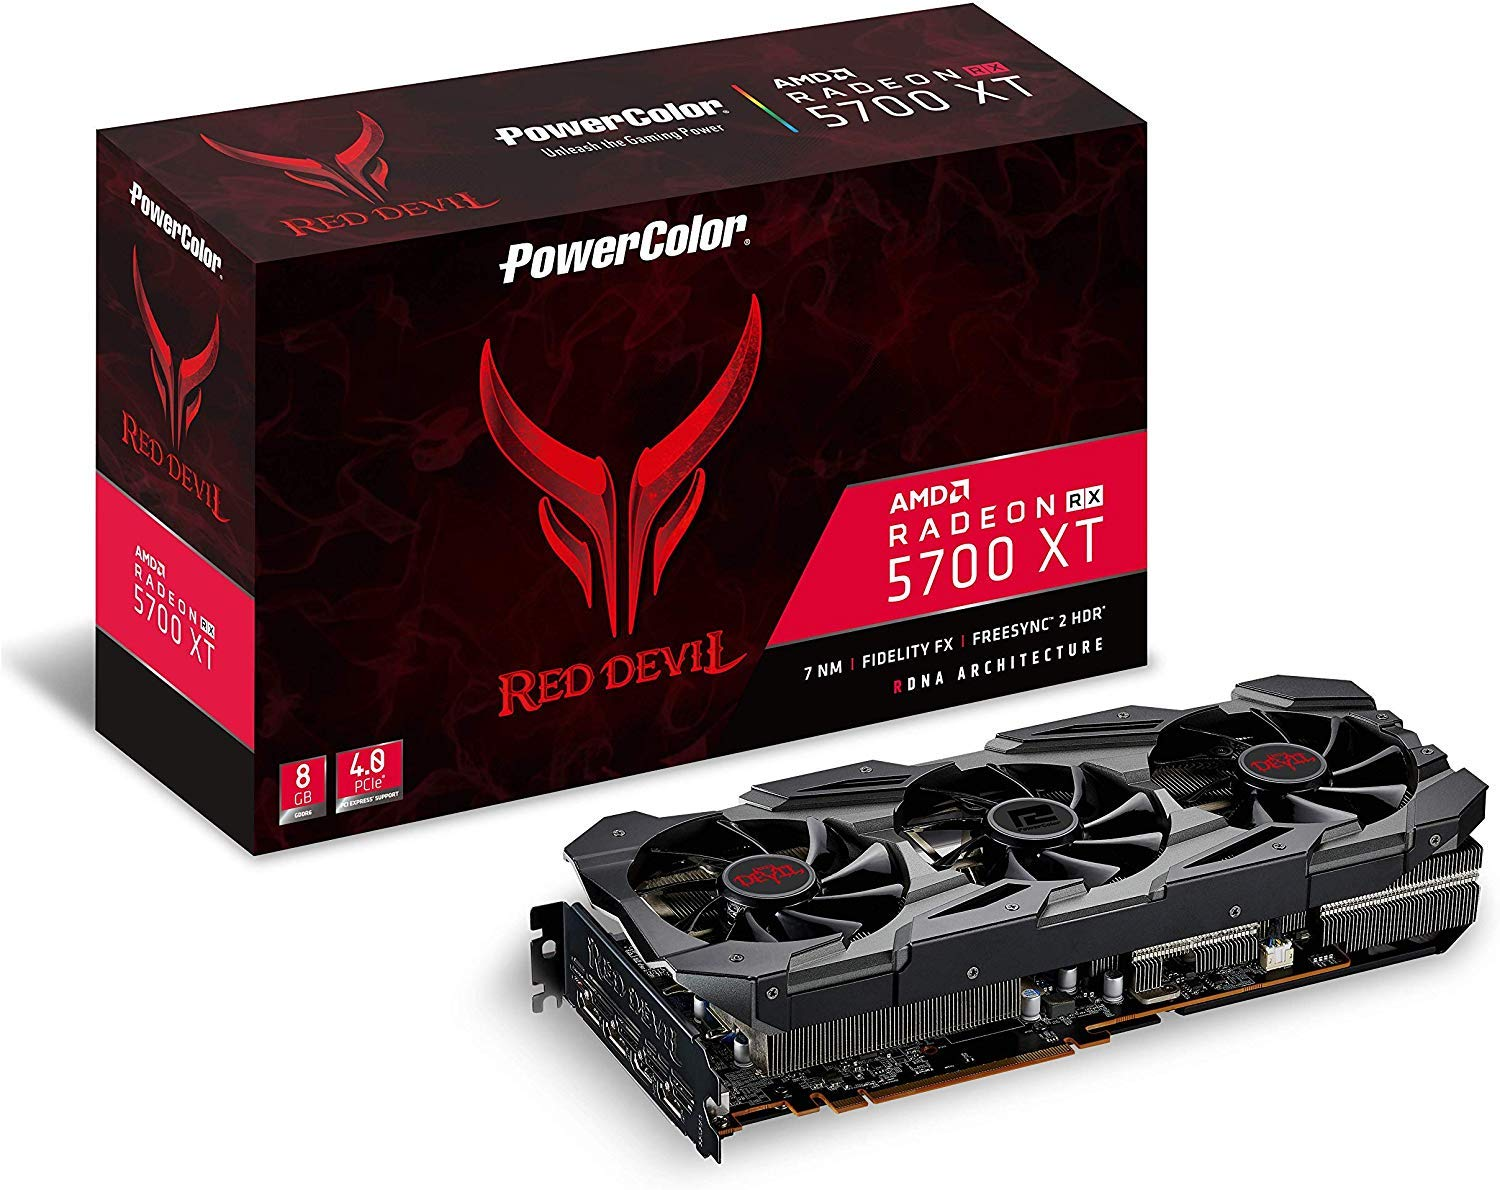 PowerColor Red Devil Radeon RX 5700 XT 8GB GDDR6 Graphics Card